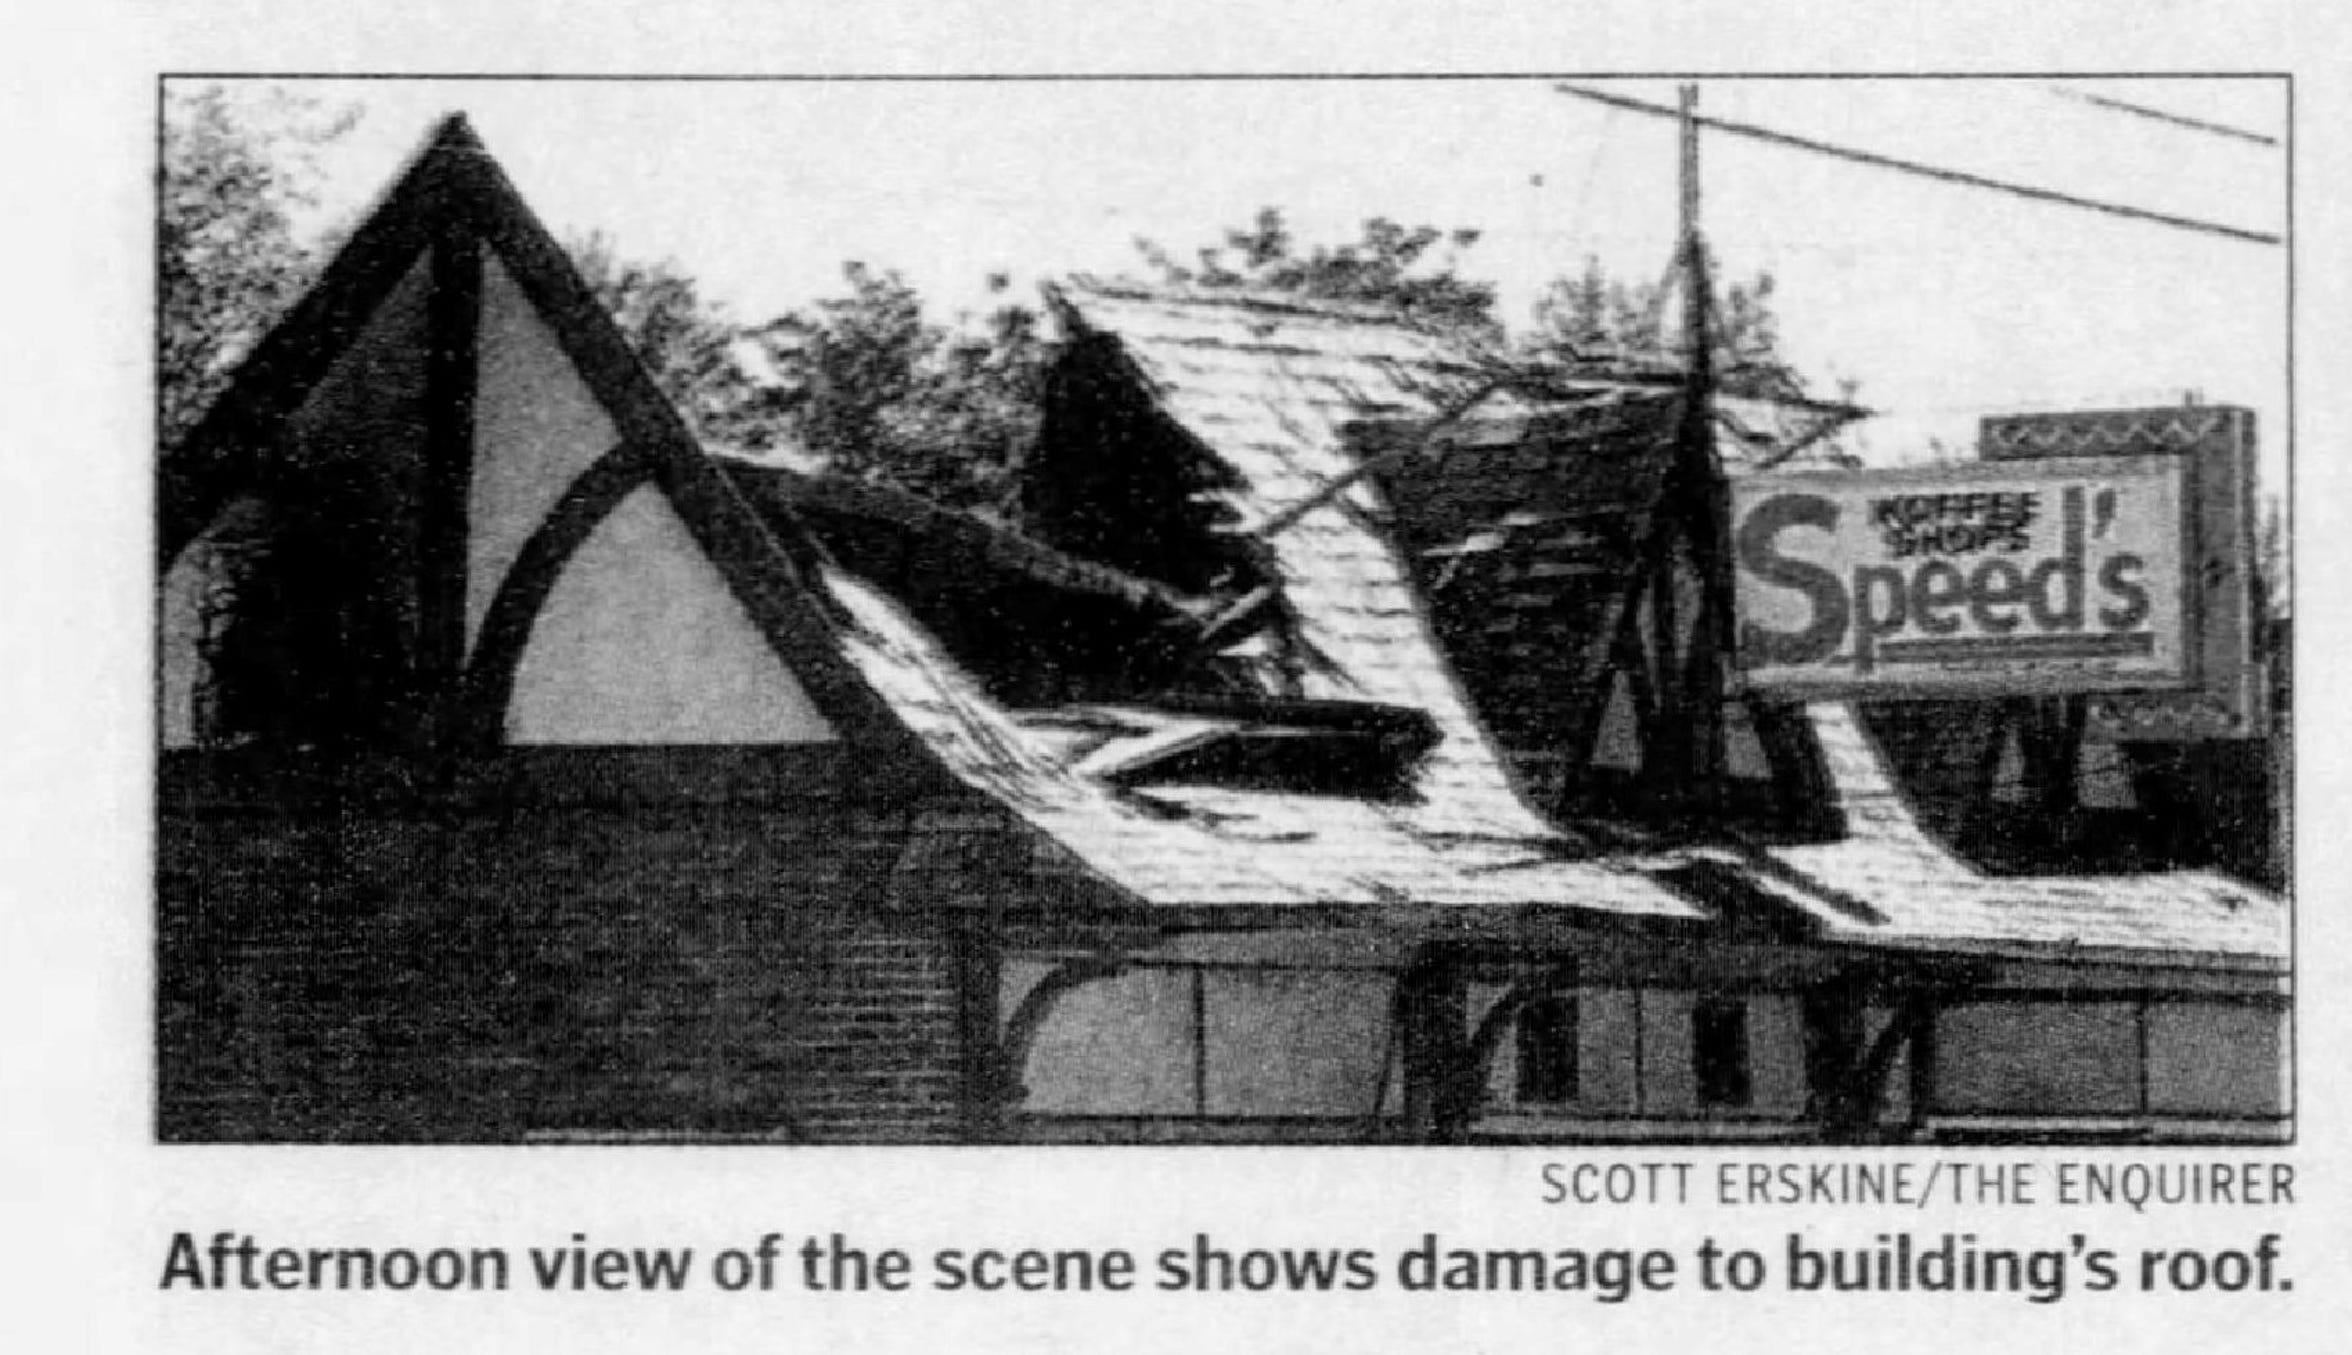 In this Sept. 17, 1999 photo in the Battle Creek Enquirer, the roof of Speed's Koffee Shop in the Verona neighborhood is damaged following a fire.